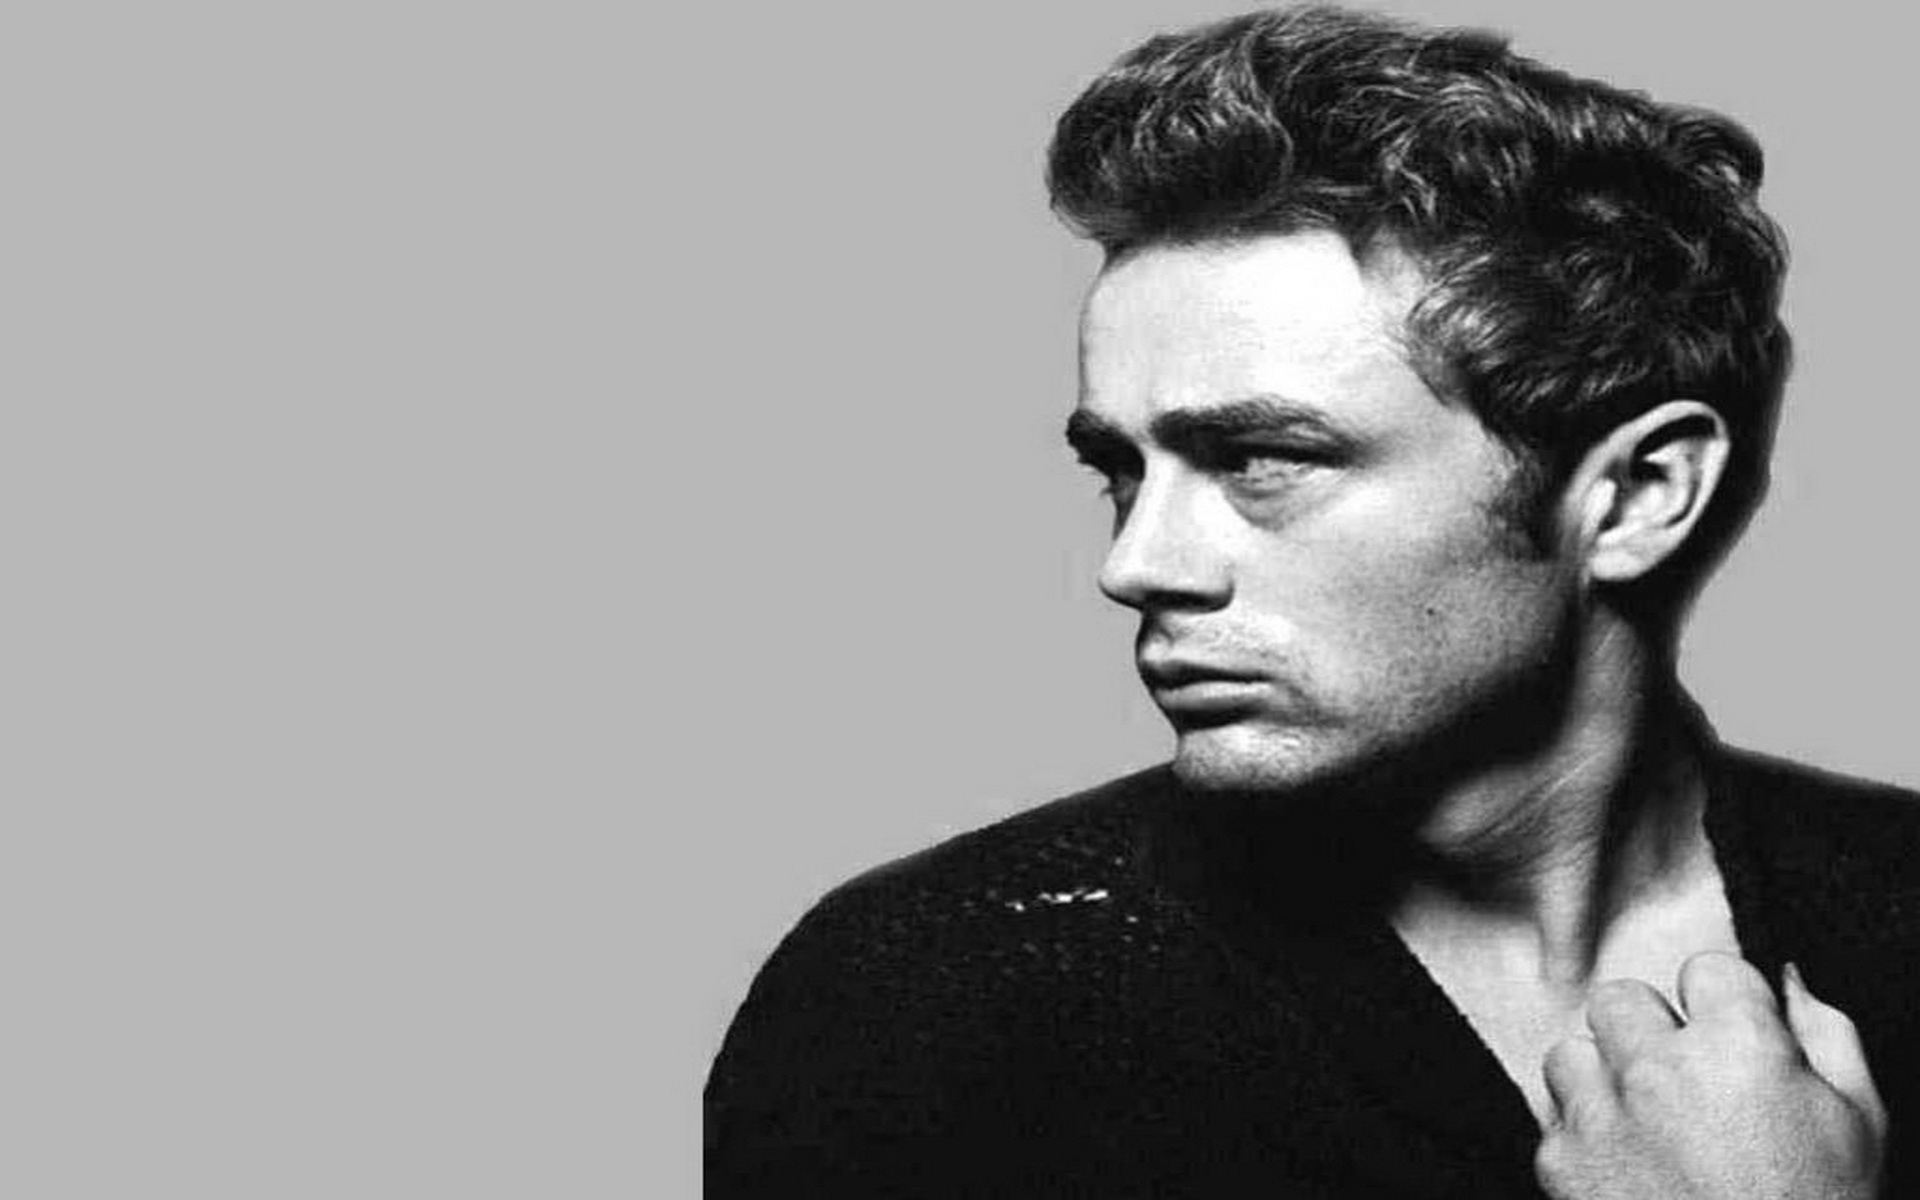 Wallpaper James Dean: Wallpapers James Dean Hd 1920x1200px